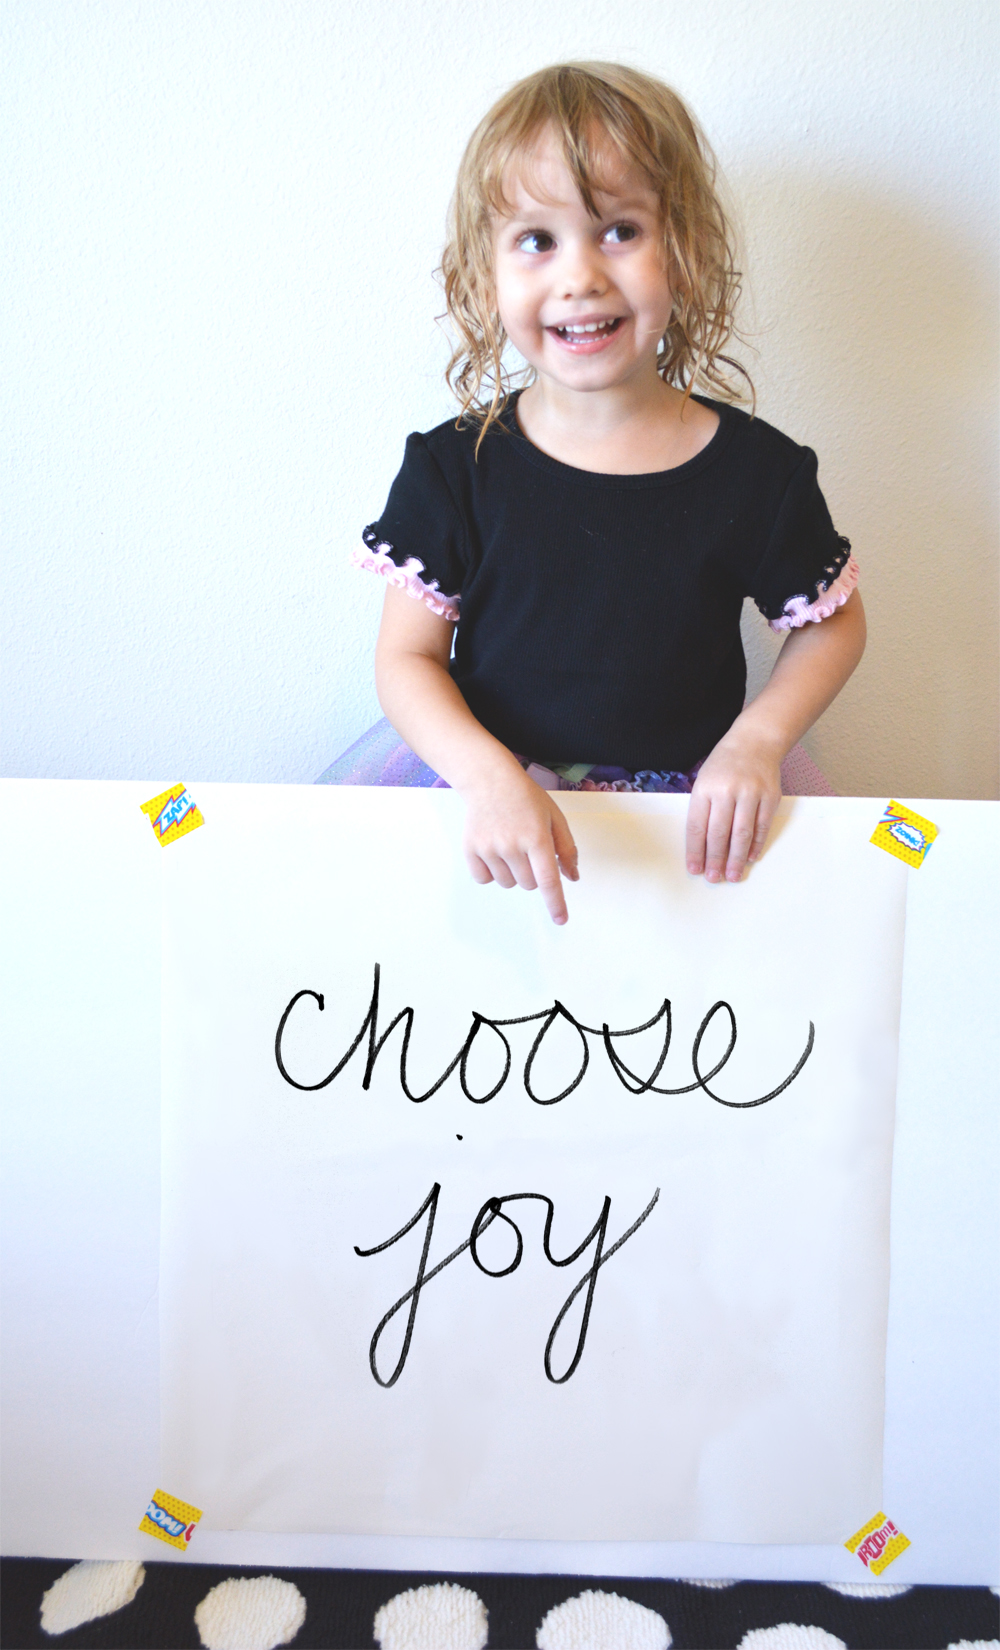 Dear Mommy Blogs, I'm done with the negativity. I choose joy.